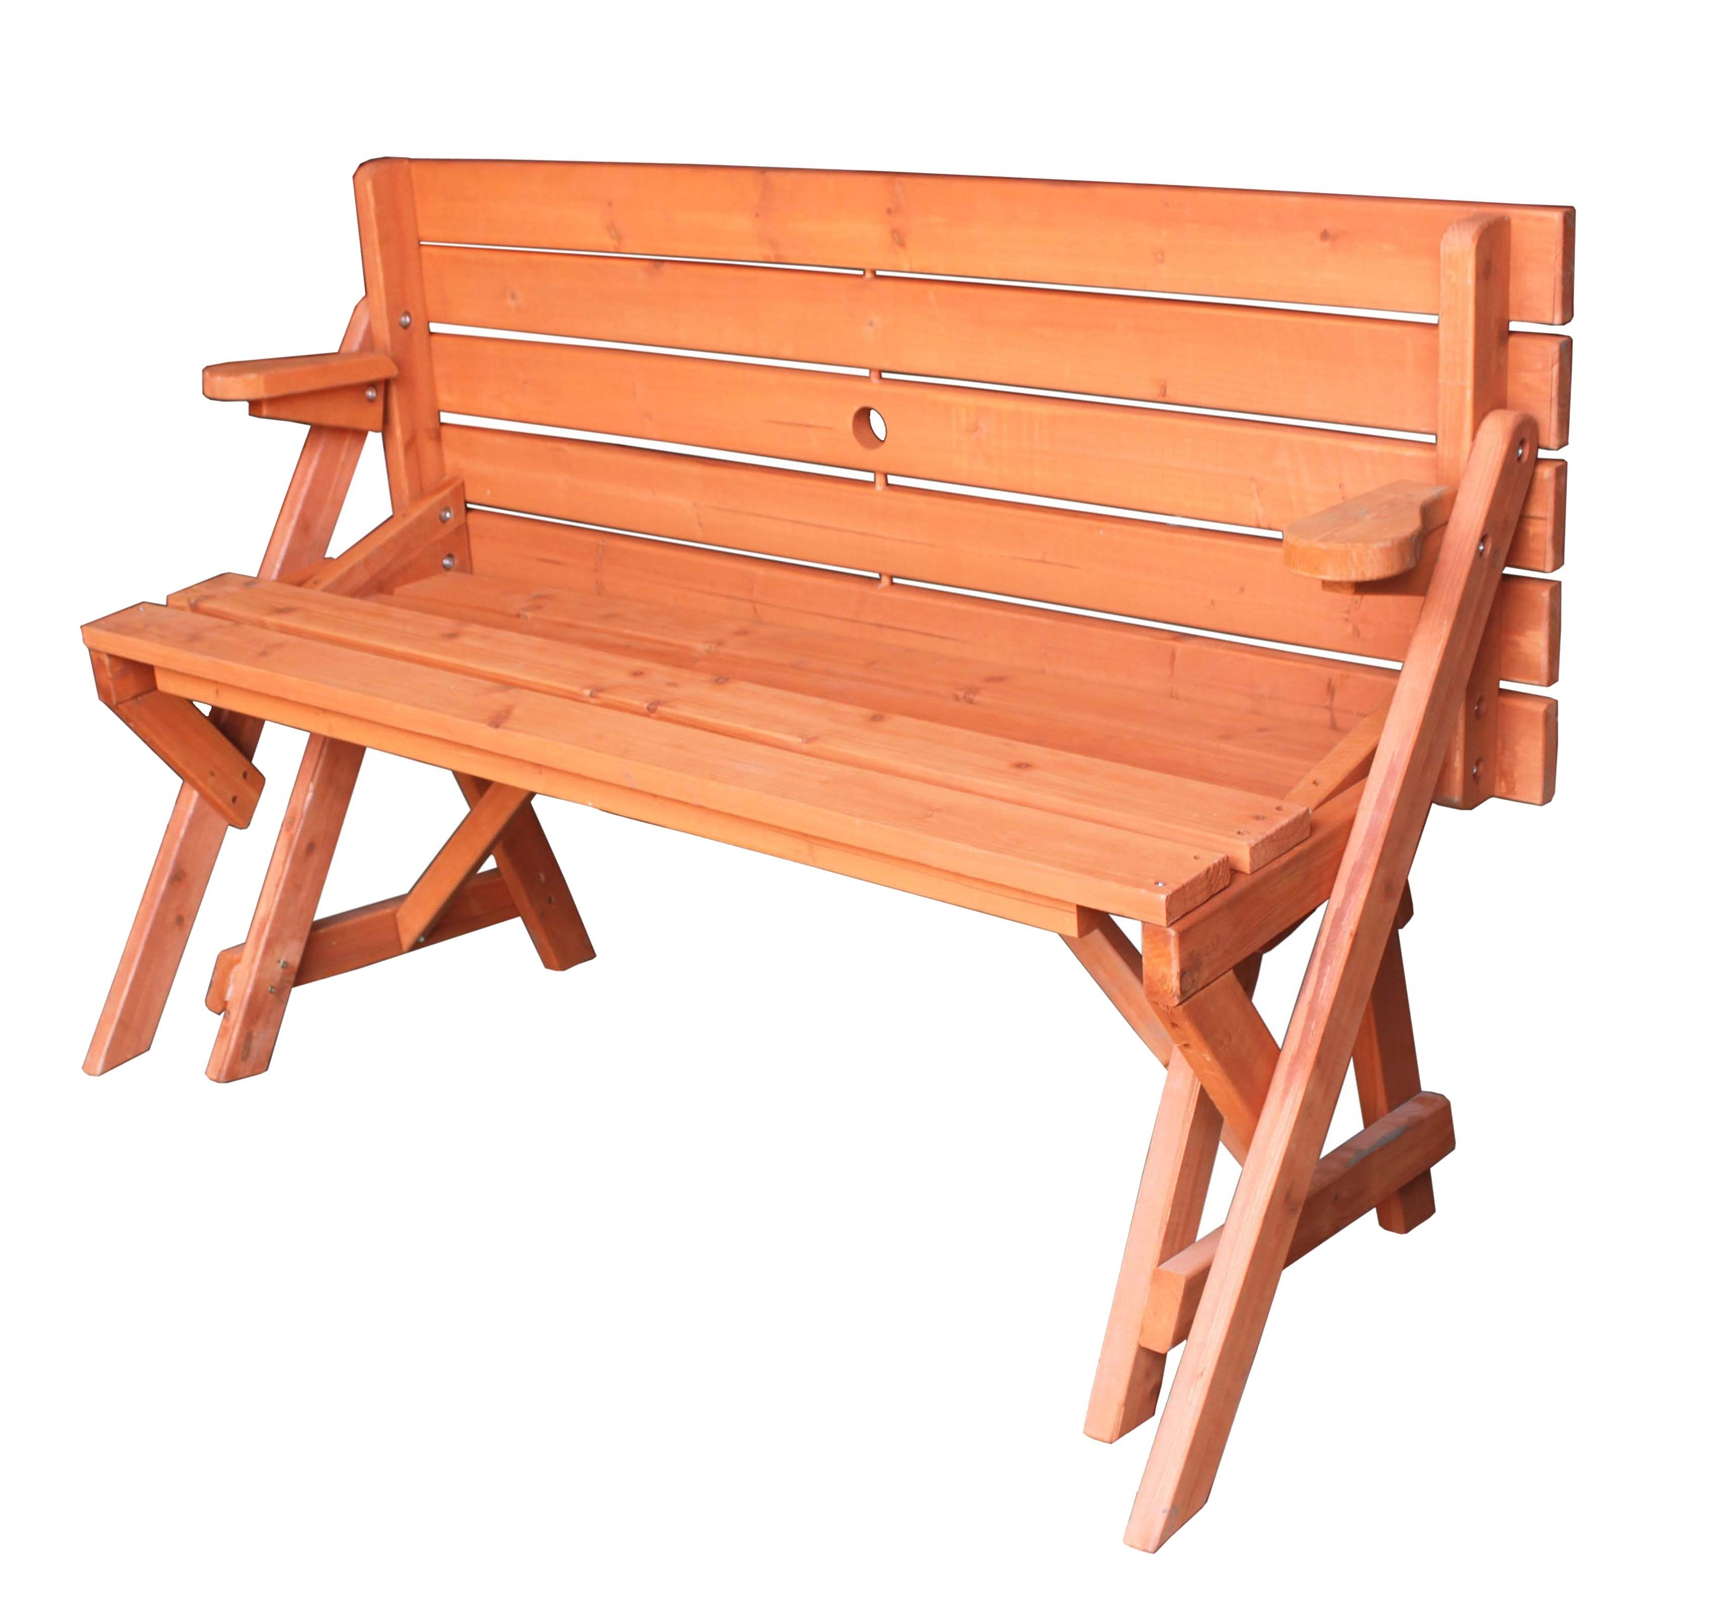 oak s product from antique furnishings classic bench seater folding swaythling benches church